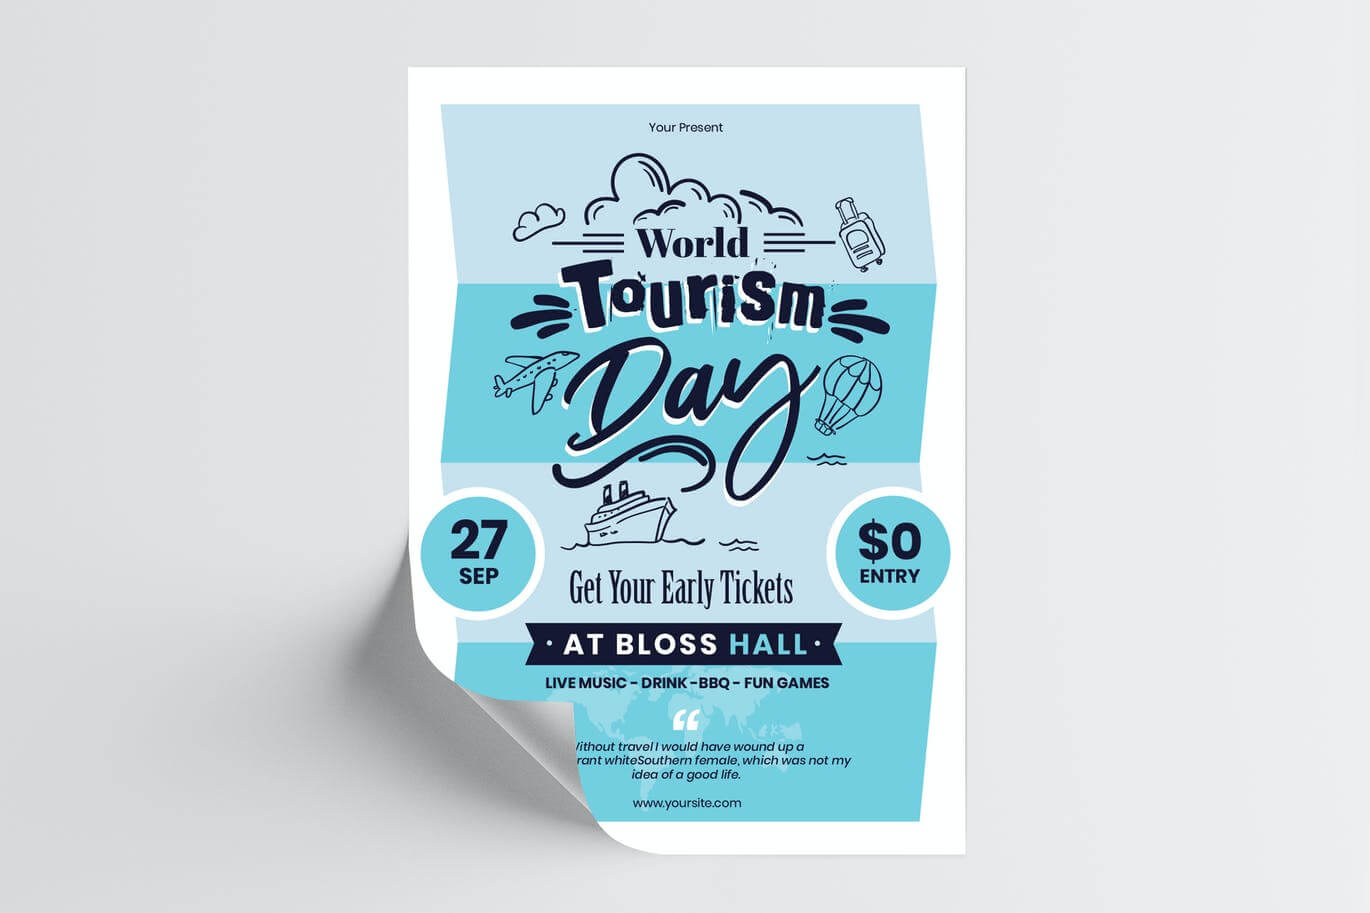 World Tourism Day Flyer Template (1)